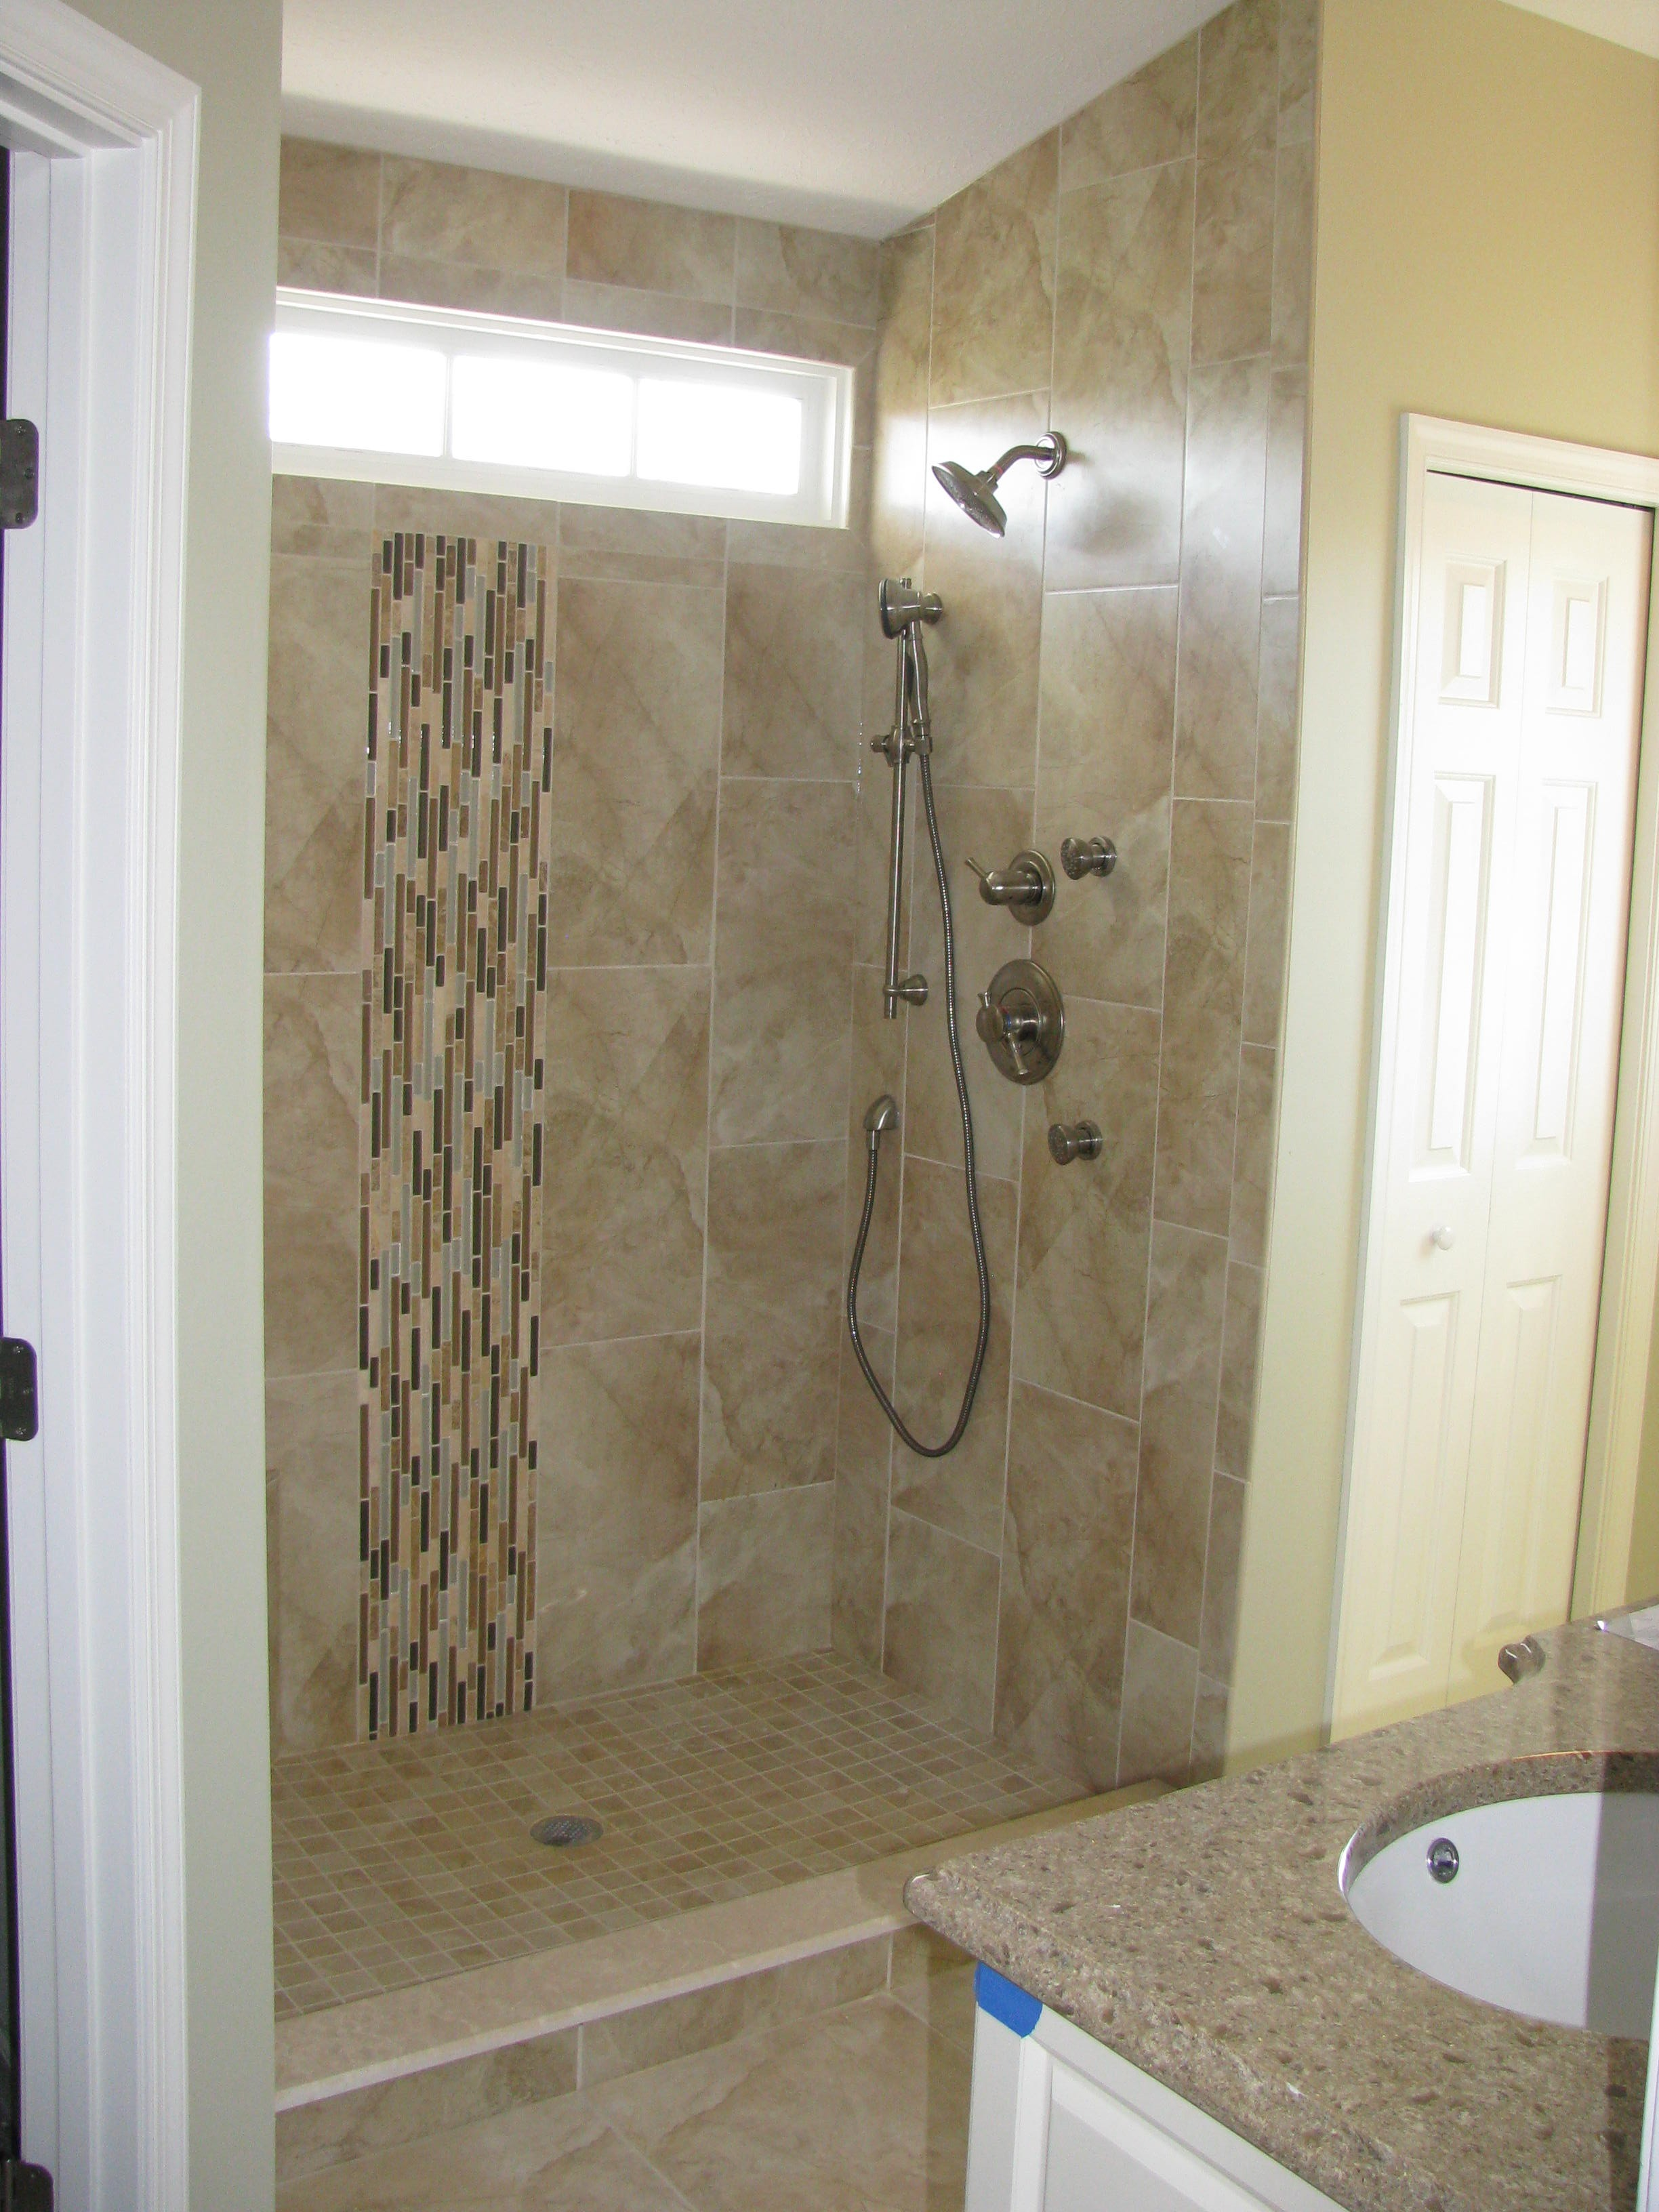 bathroom tile design ideas as well mosaic bathroom tile design ideas - Shower Tile Design Ideas